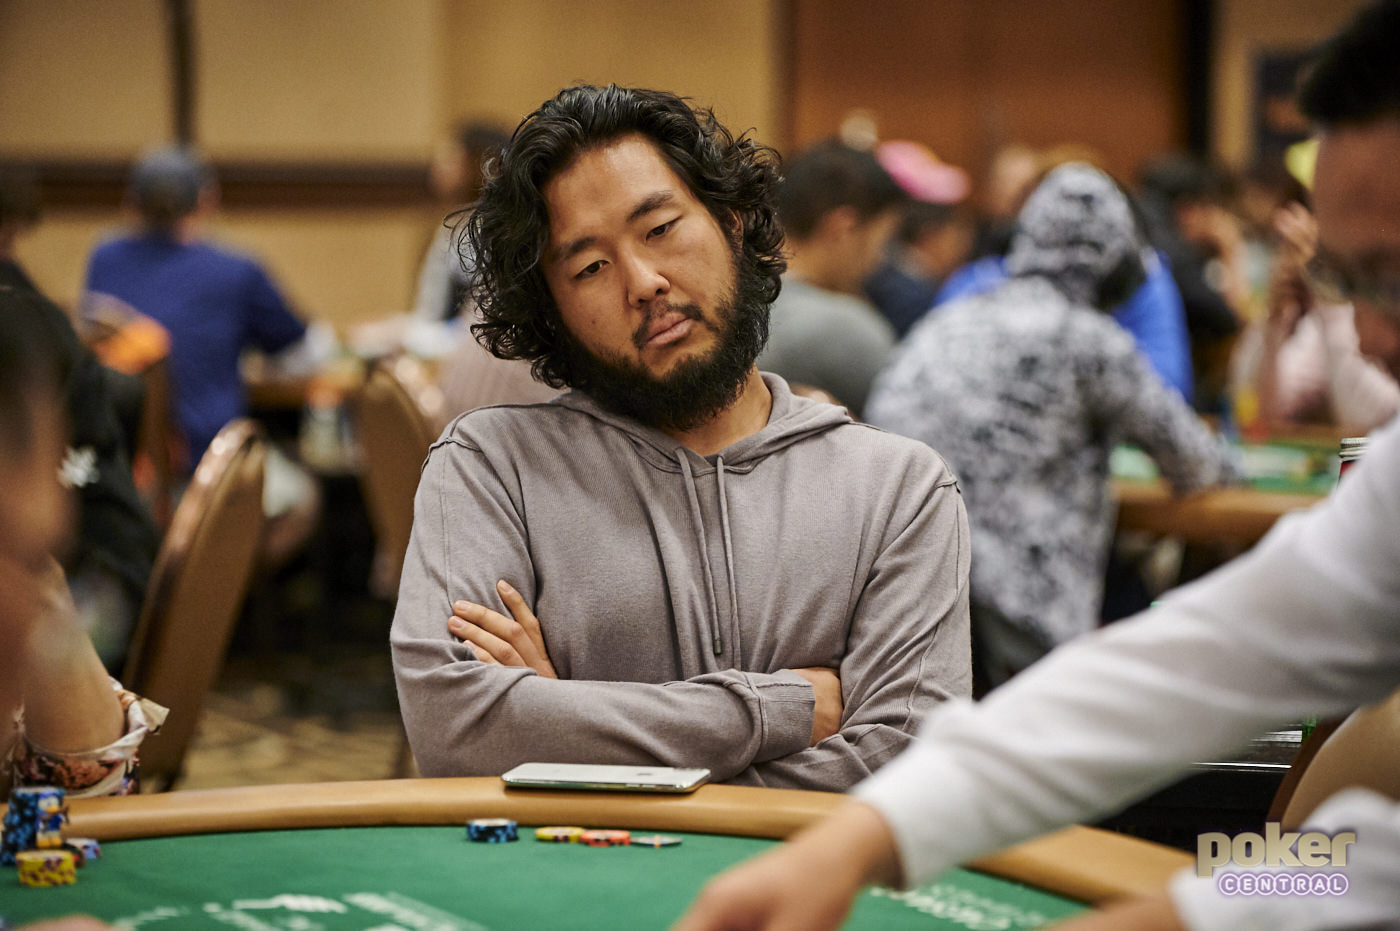 Defending champion John Cynn in action during Day 1c of the WSOP Main Event.